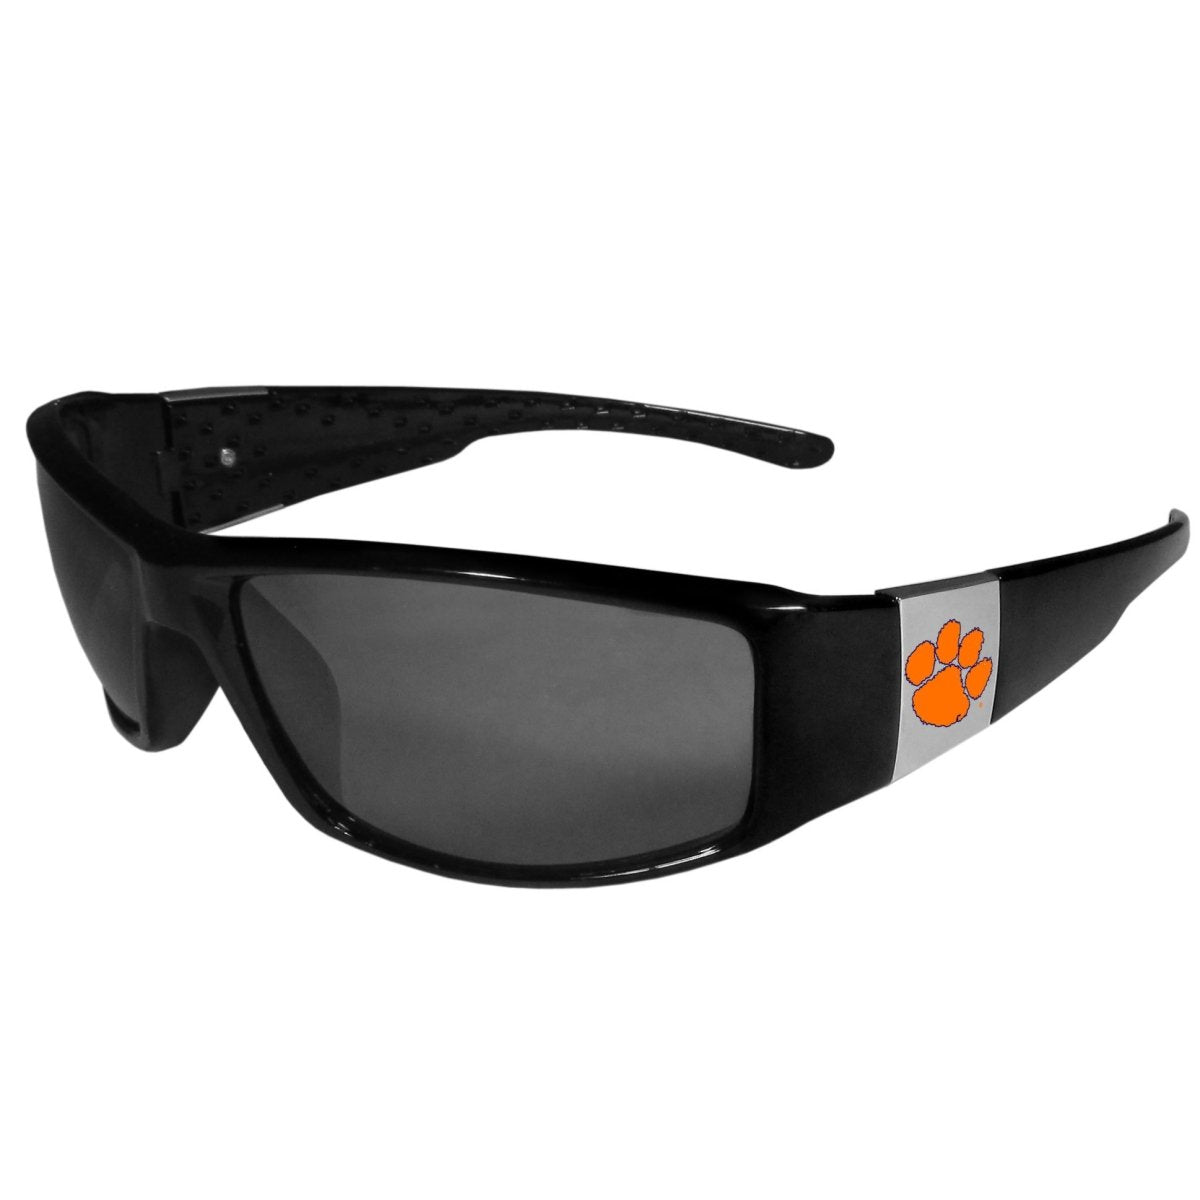 Siskiyou Clemson Tigers Chrome Wrap Sunglasses - Mr. Knickerbocker